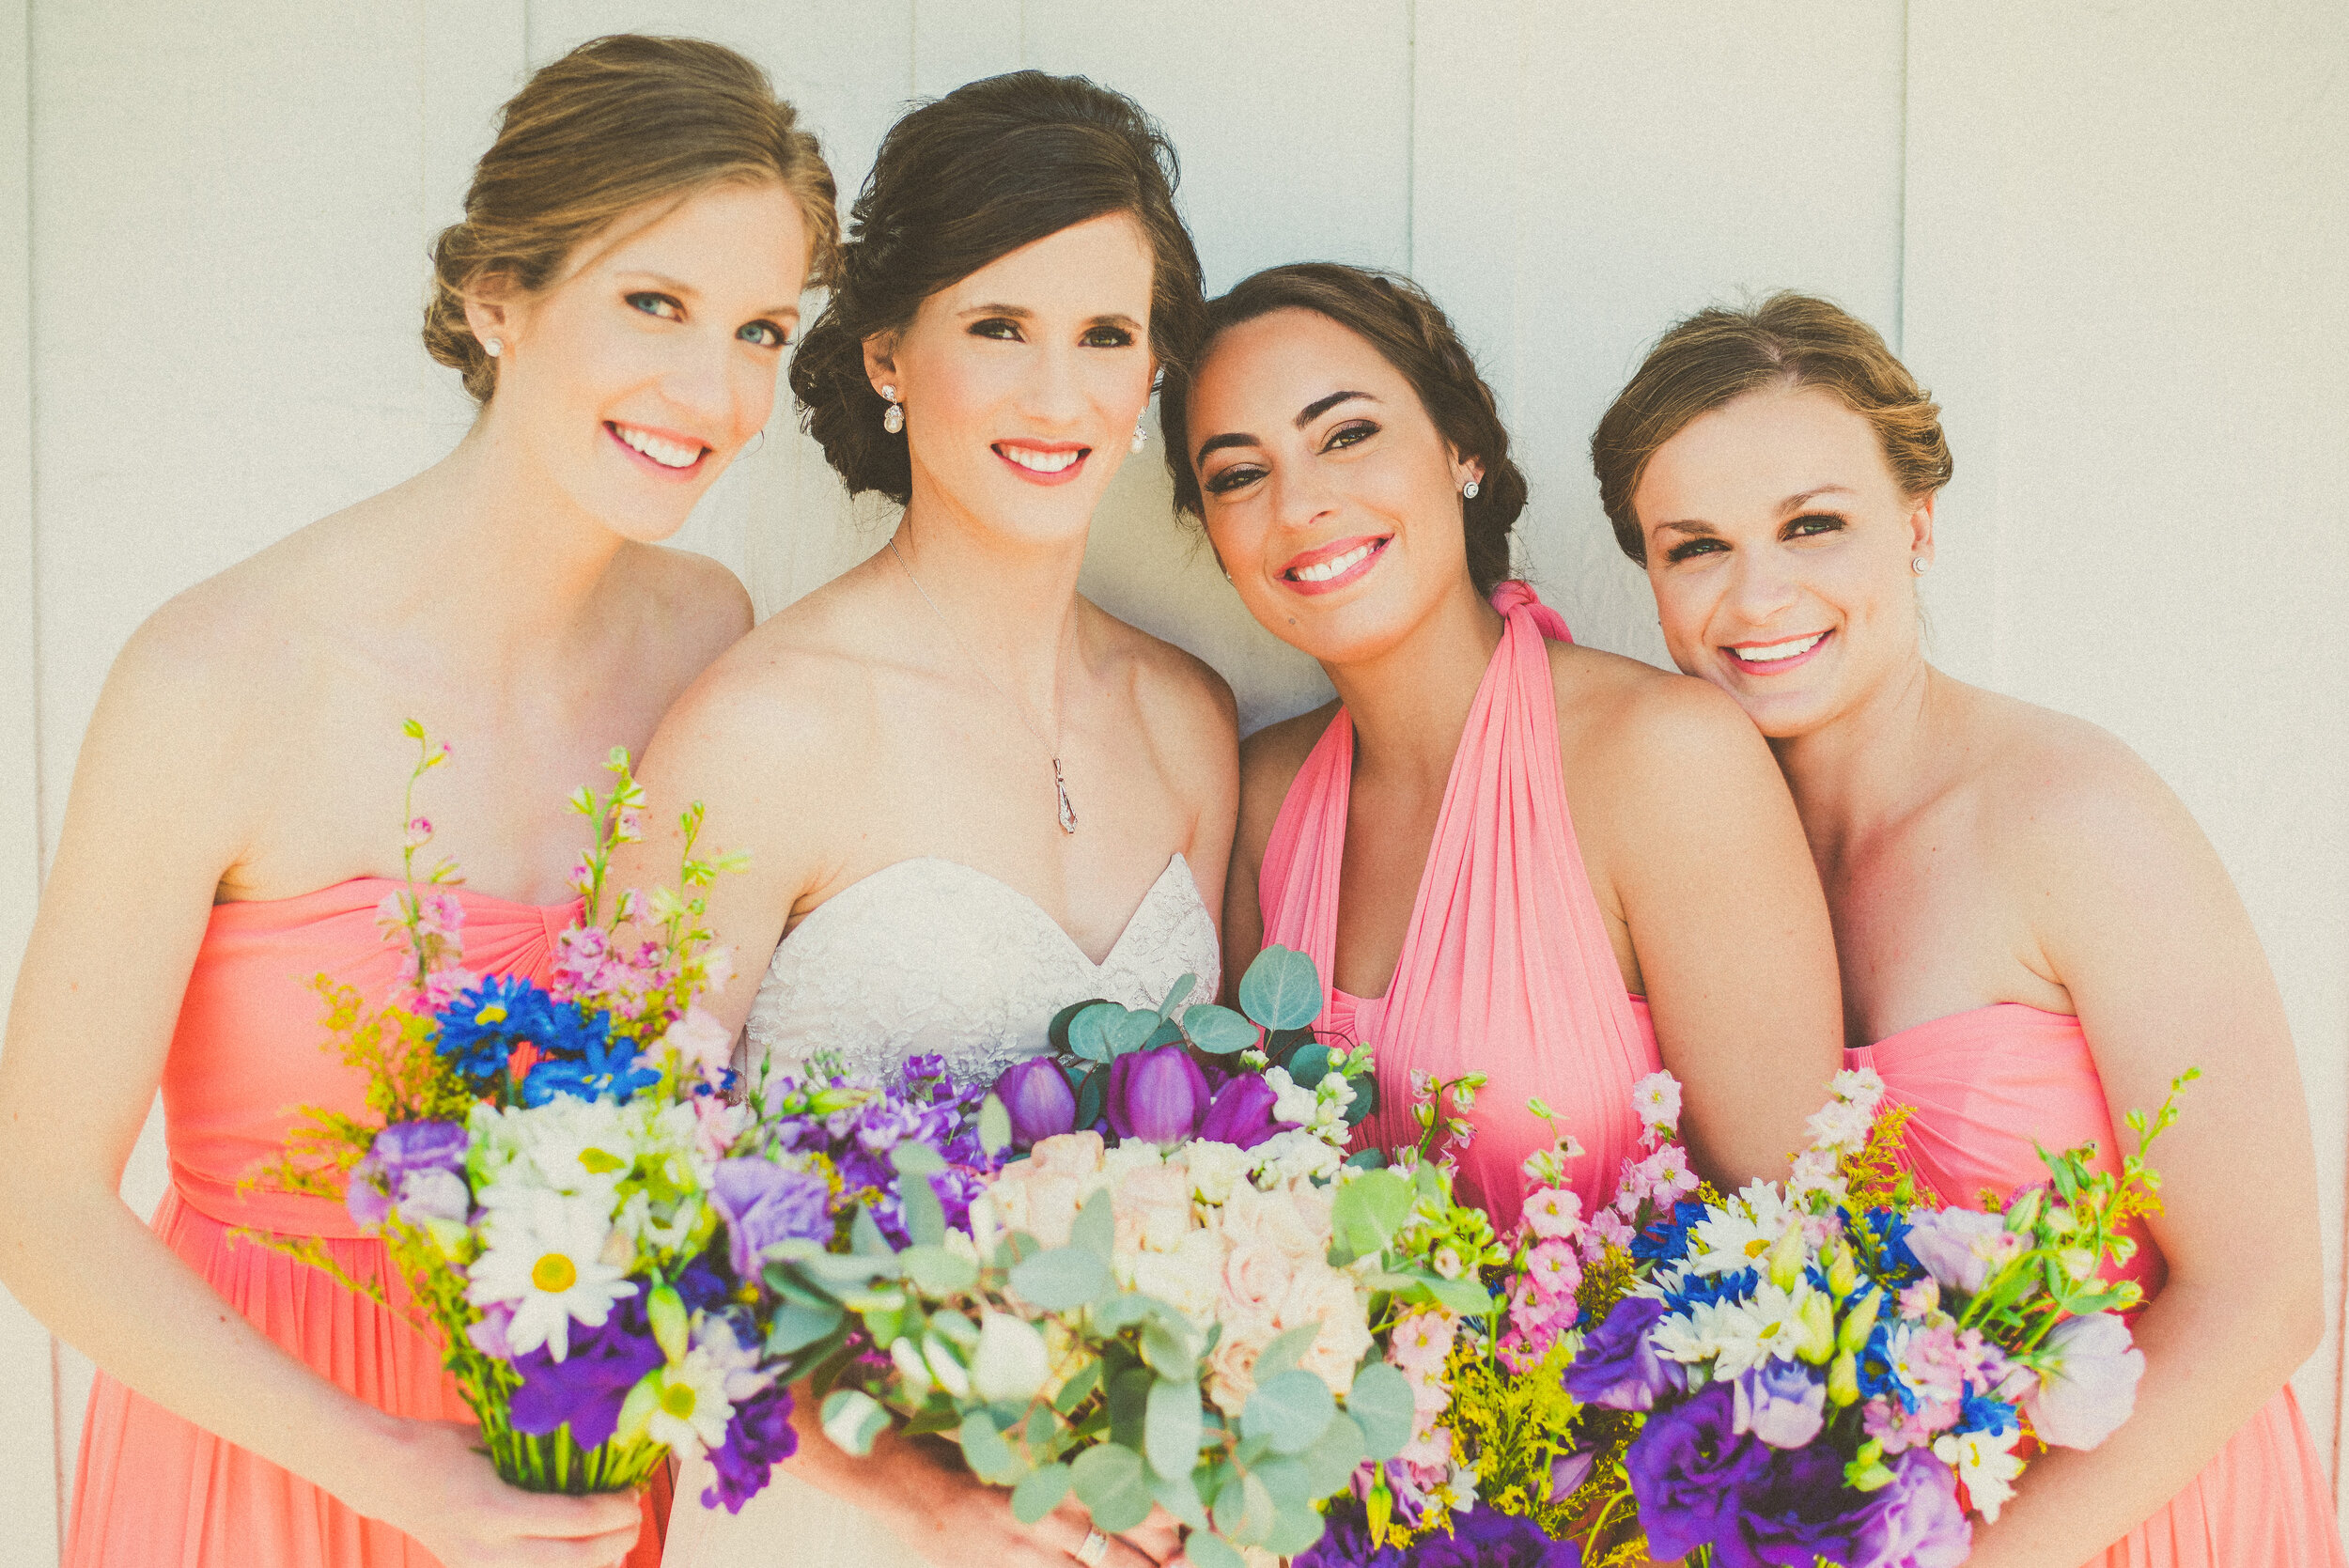 Taul Wedding - Bride + Bridesmaids-3.jpg